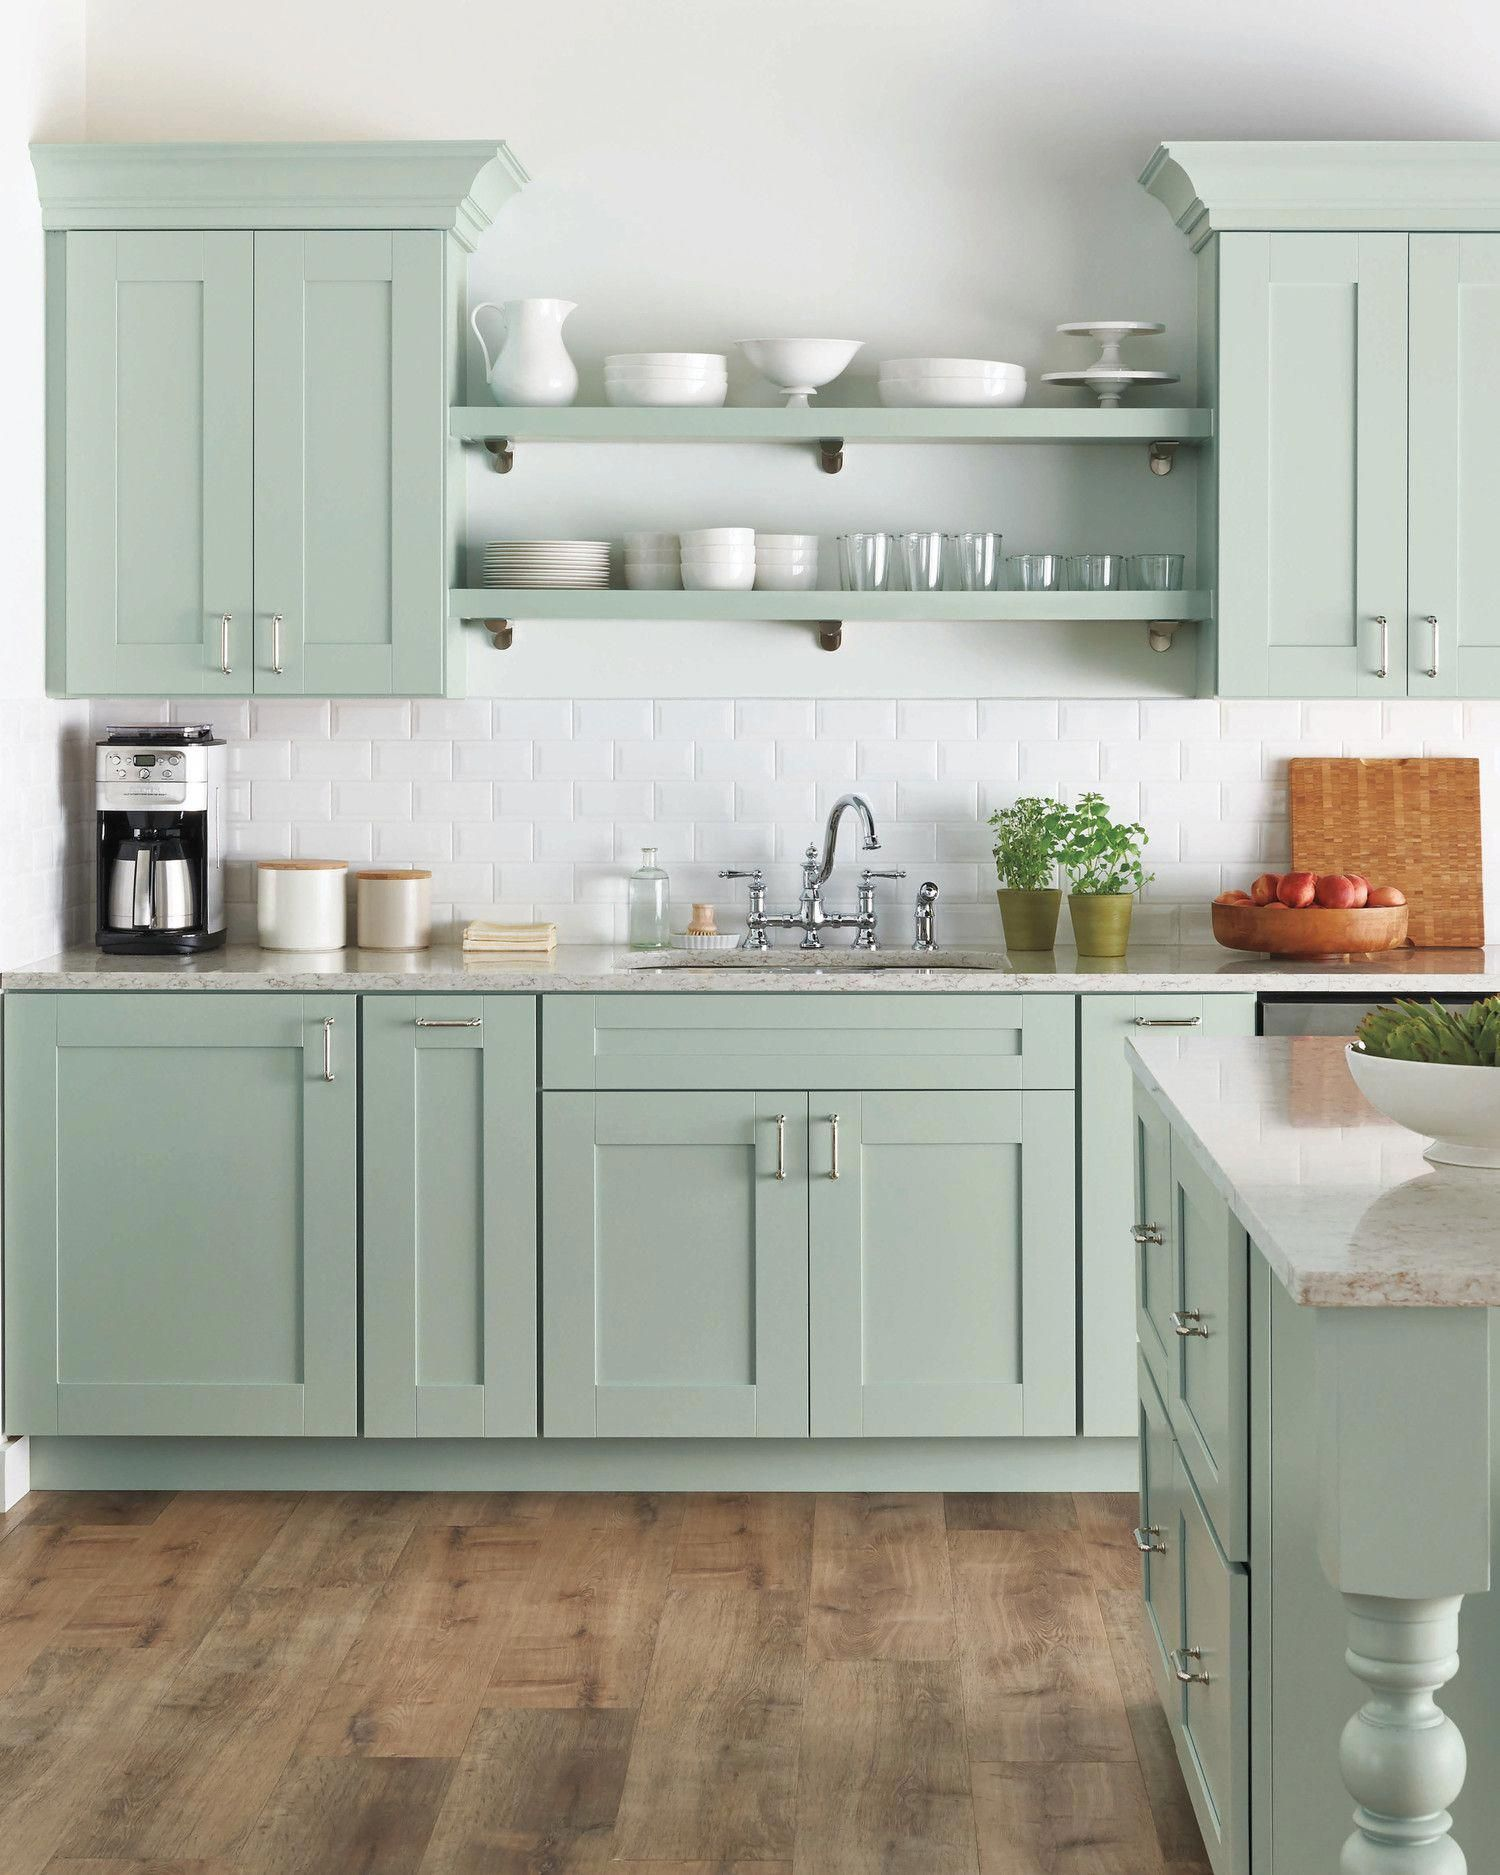 Your Backsplash Is One Of The Main Focal Points Of Your Kitchen